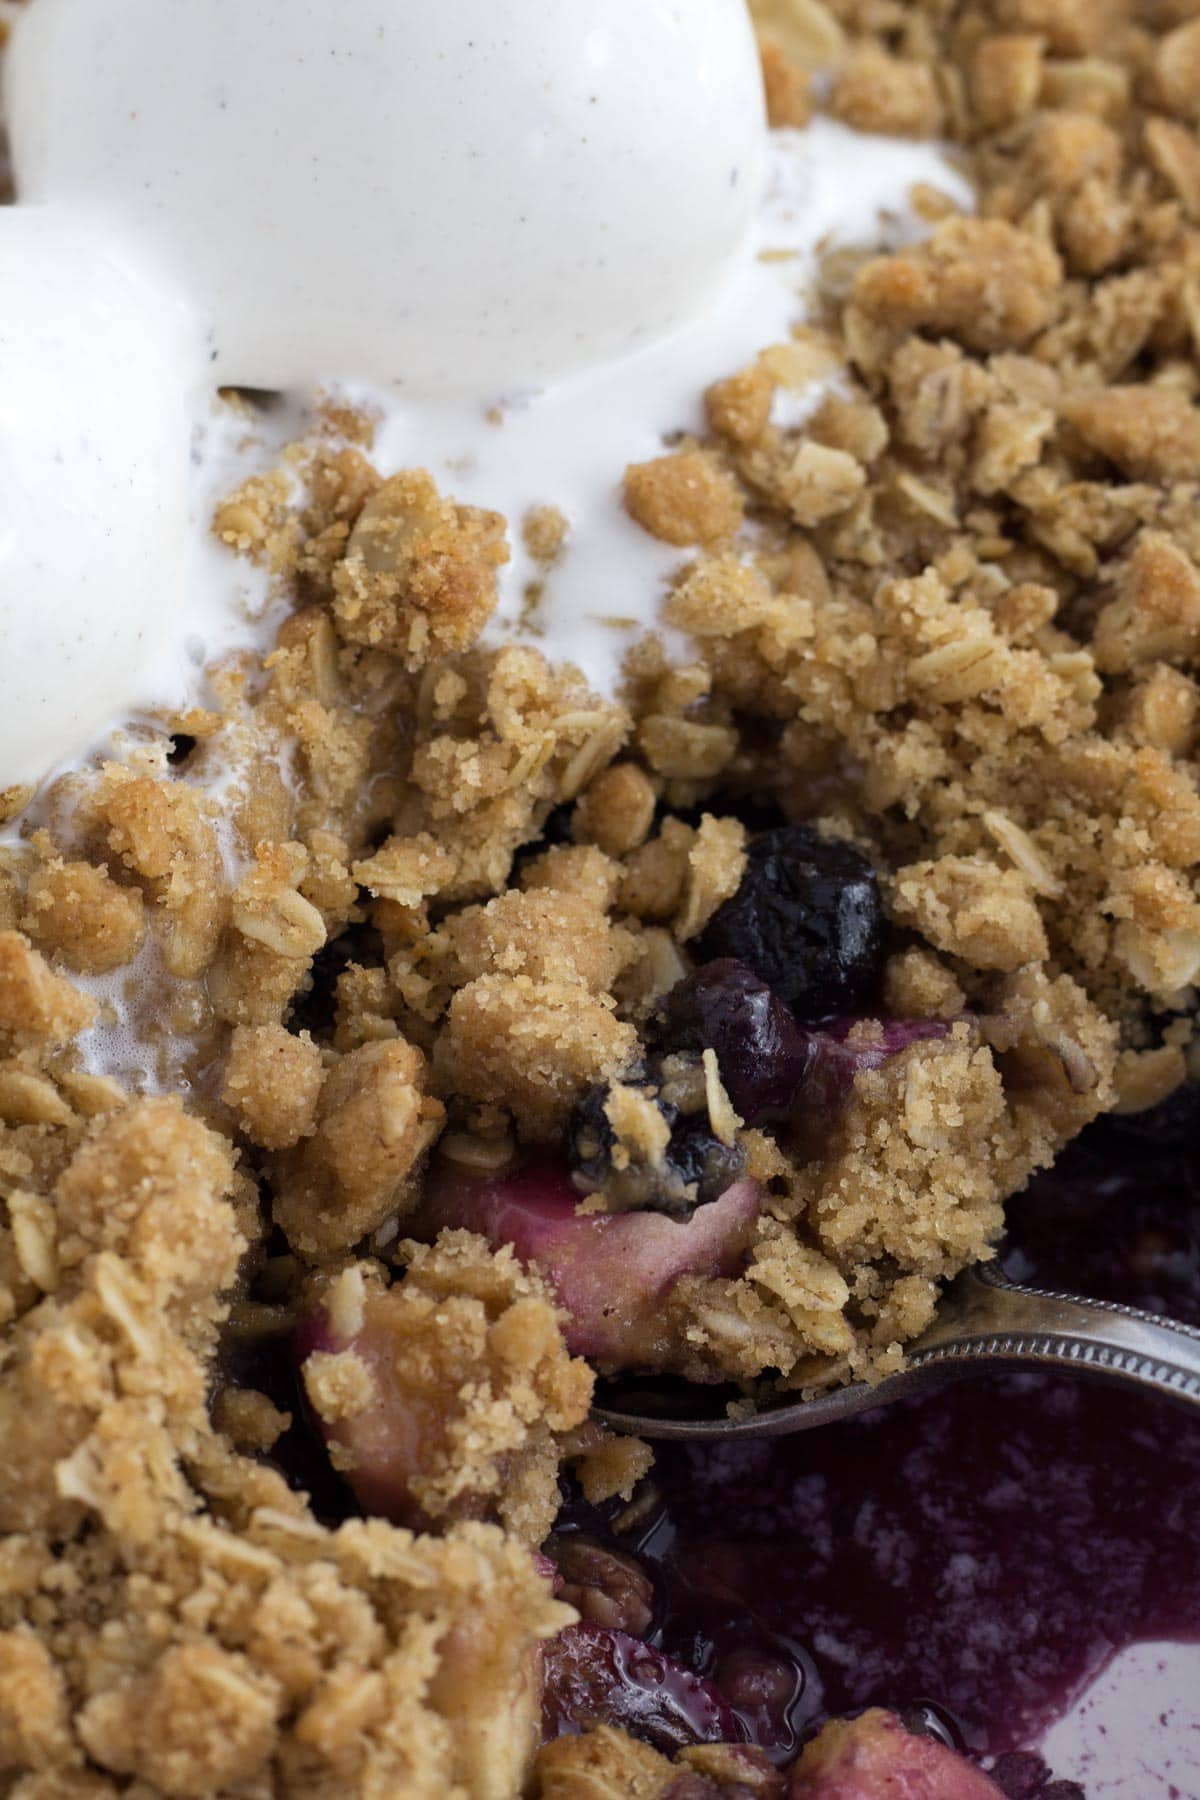 Very close view of spoon scooping blueberry and apple crumble out of pan.